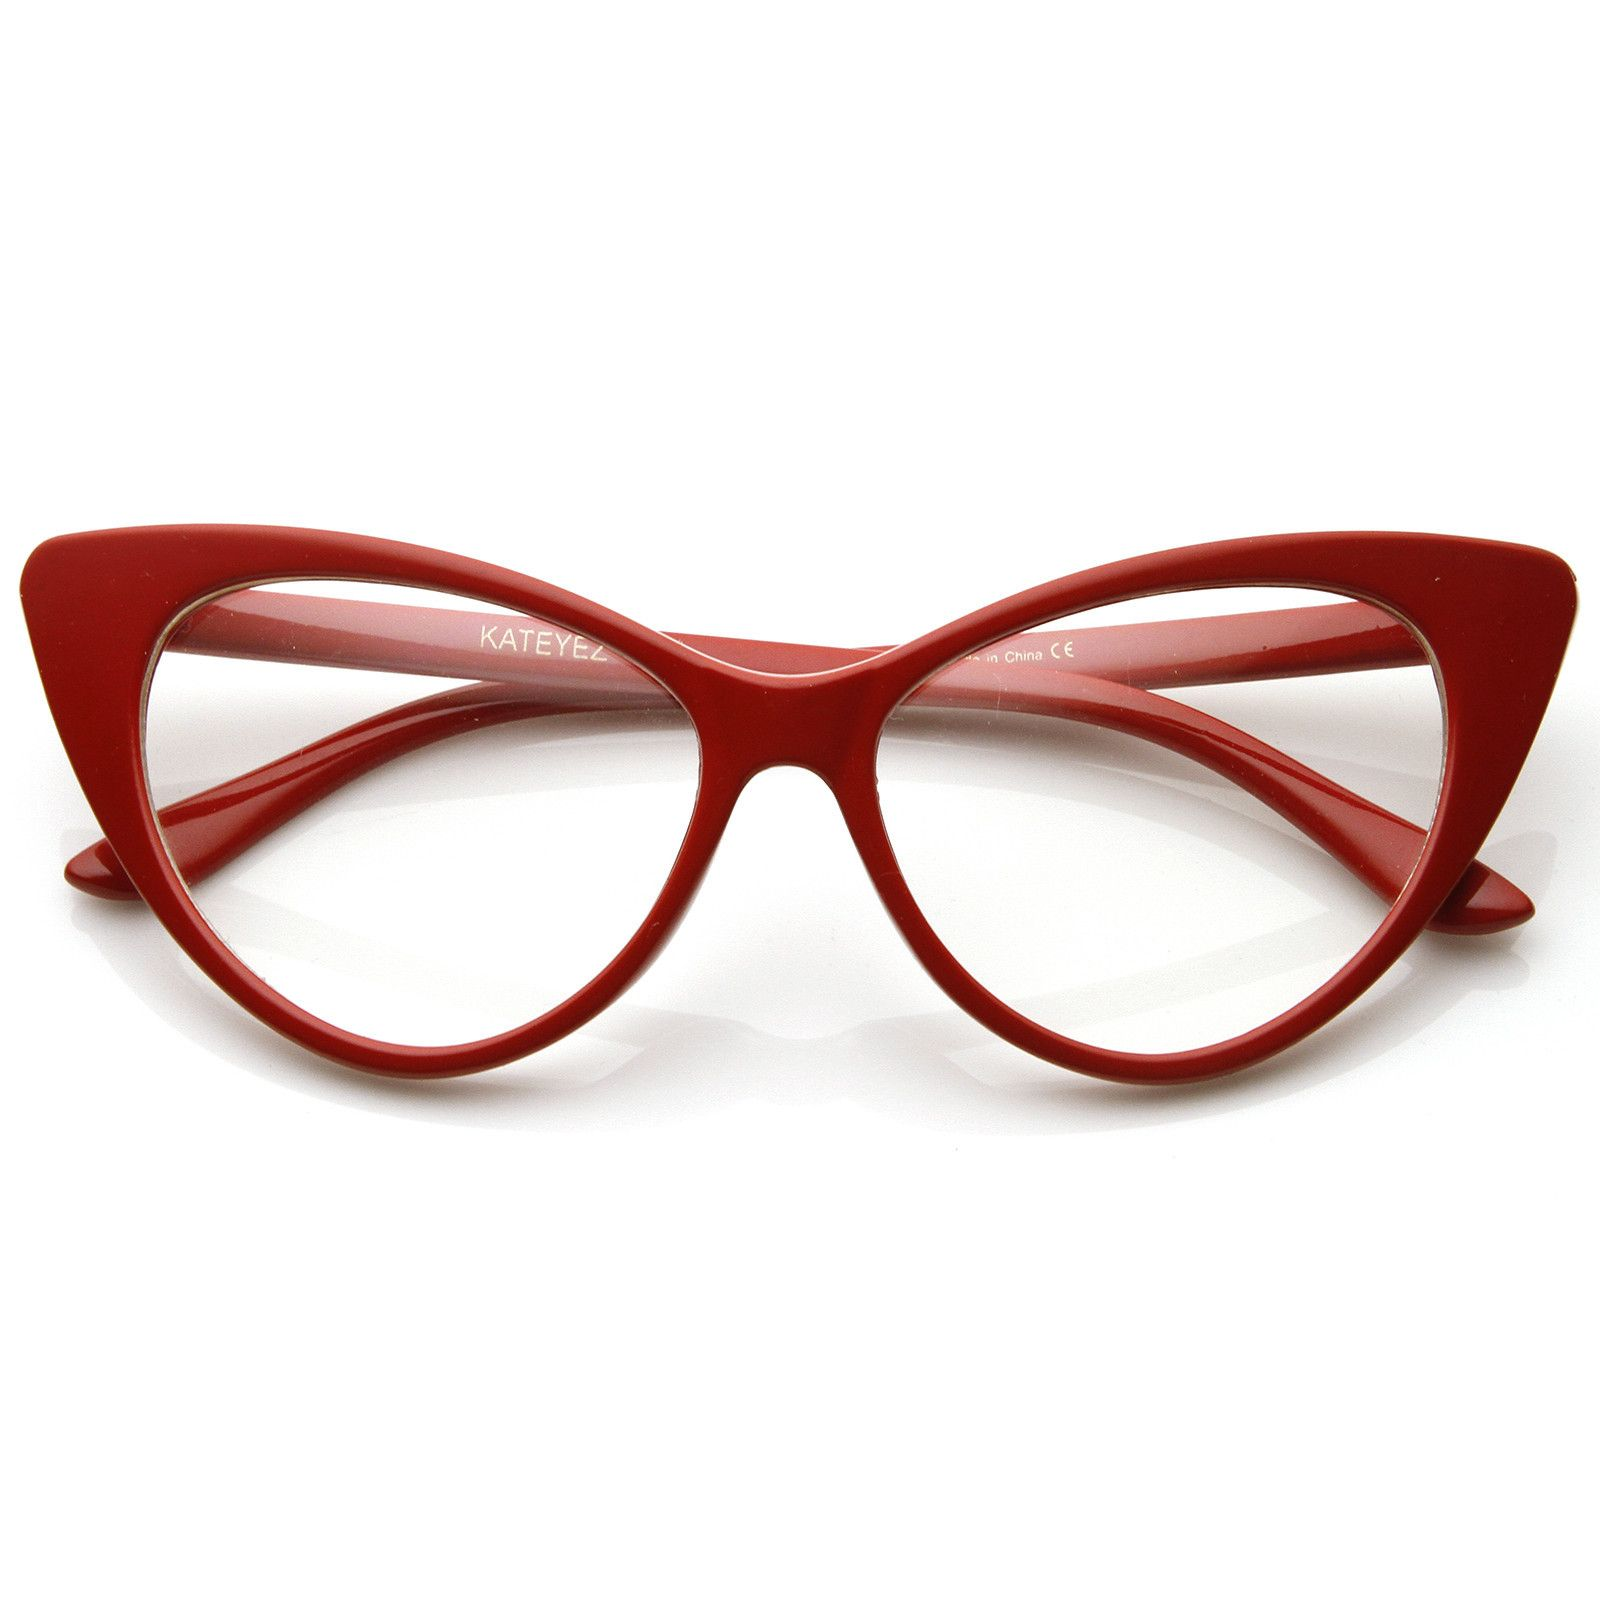 7a1c0c52f I know we will all probably need to wear eyeglasses one day, this would be  my choice. Cateye sunglasses